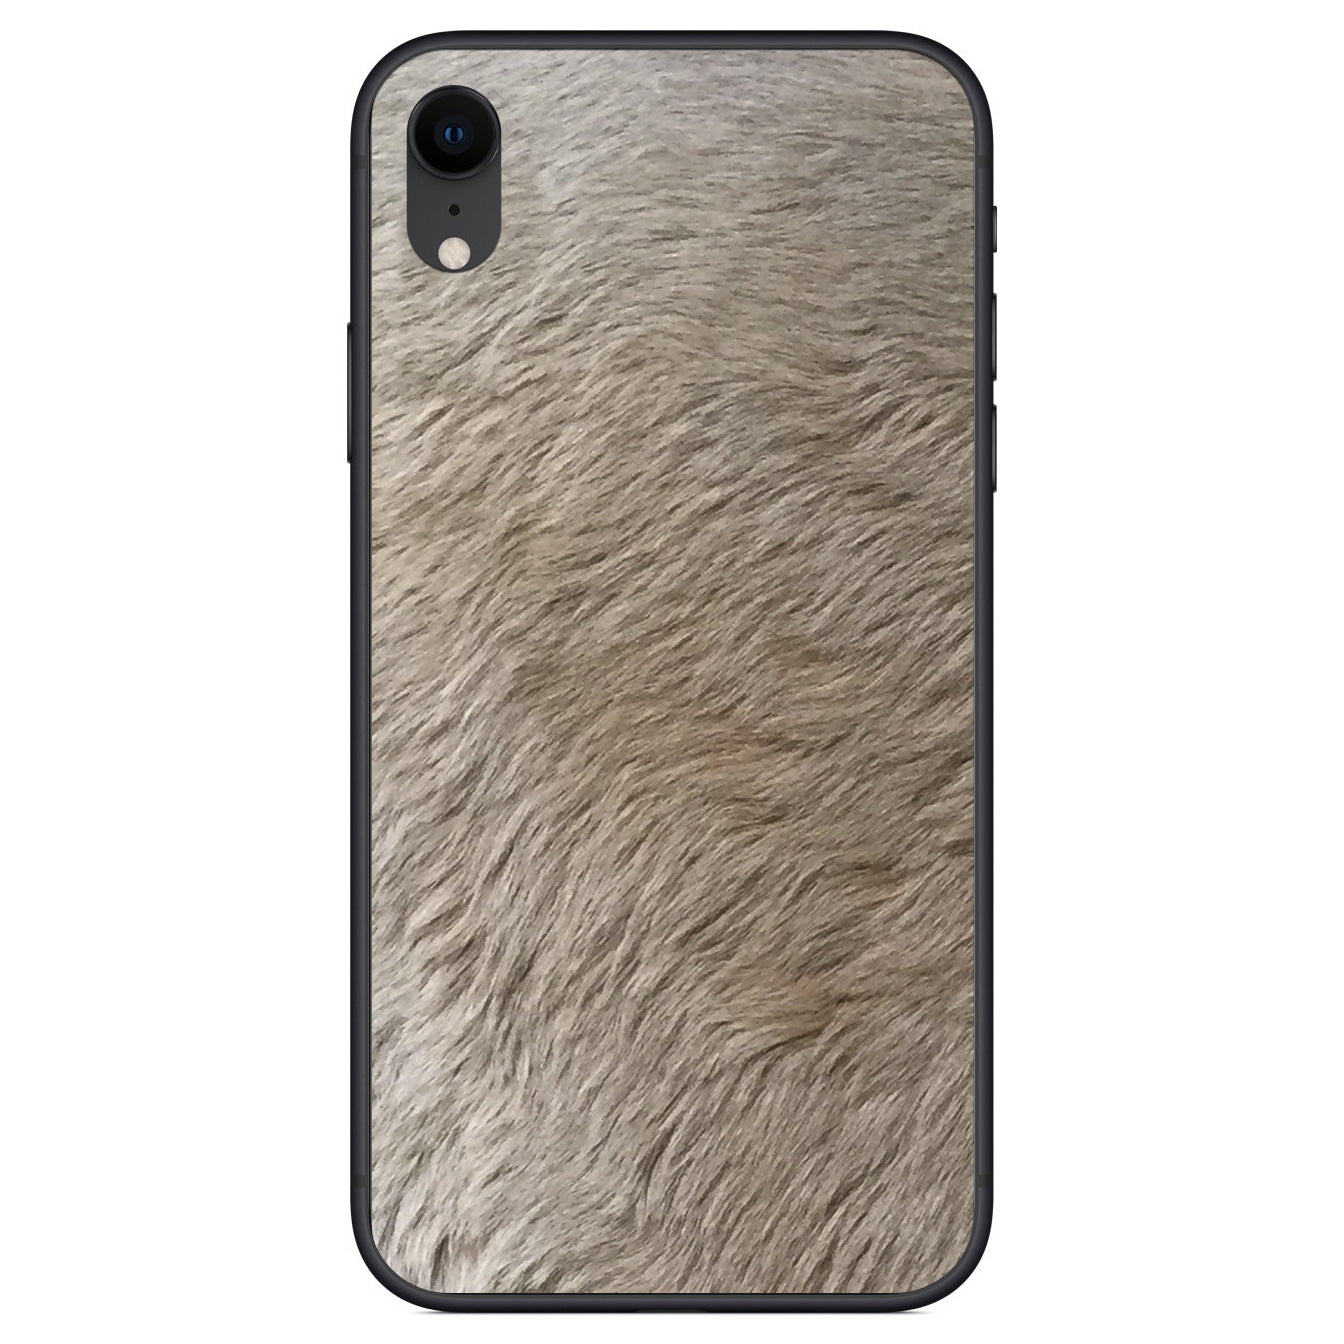 Kangaroo Hair iPhone XR Leather Skin